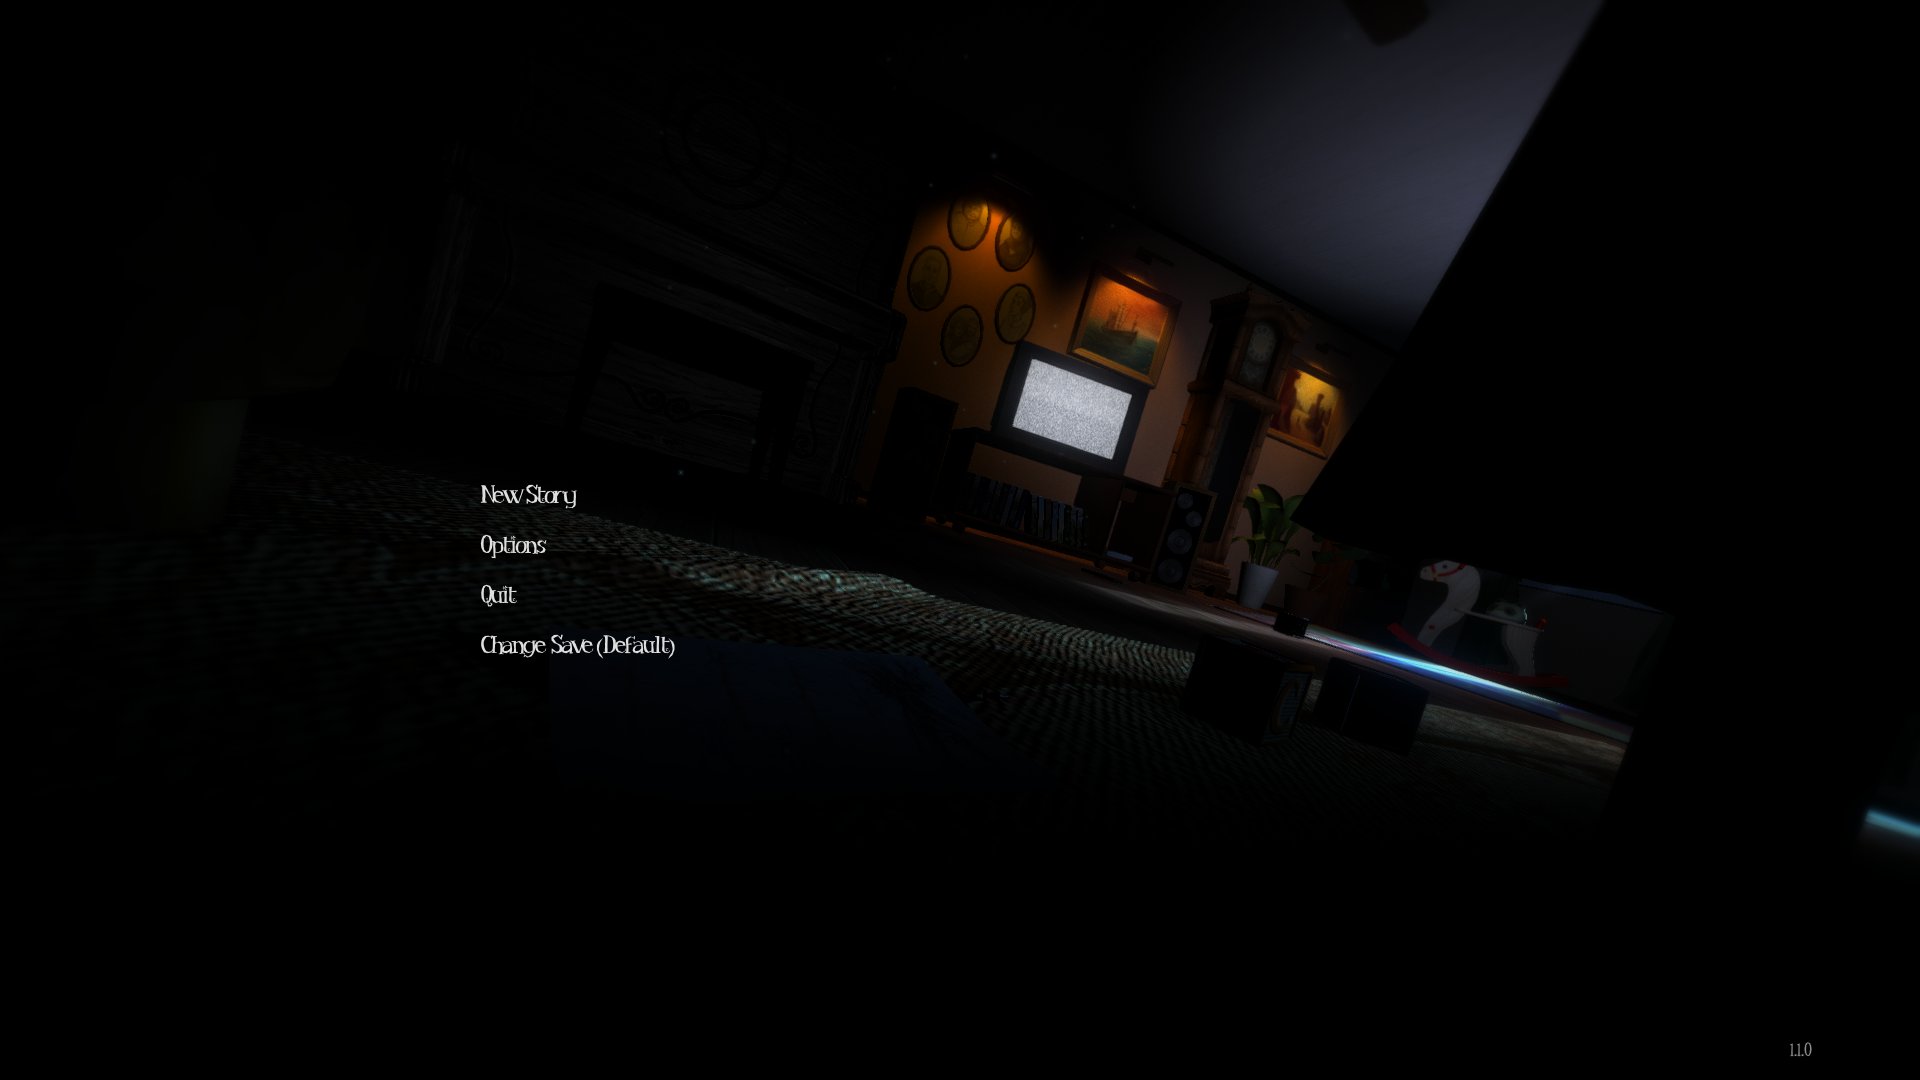 https://www.mobygames.com/images/shots/l/726096-among-the-sleep-windows-screenshot-main-menu.png